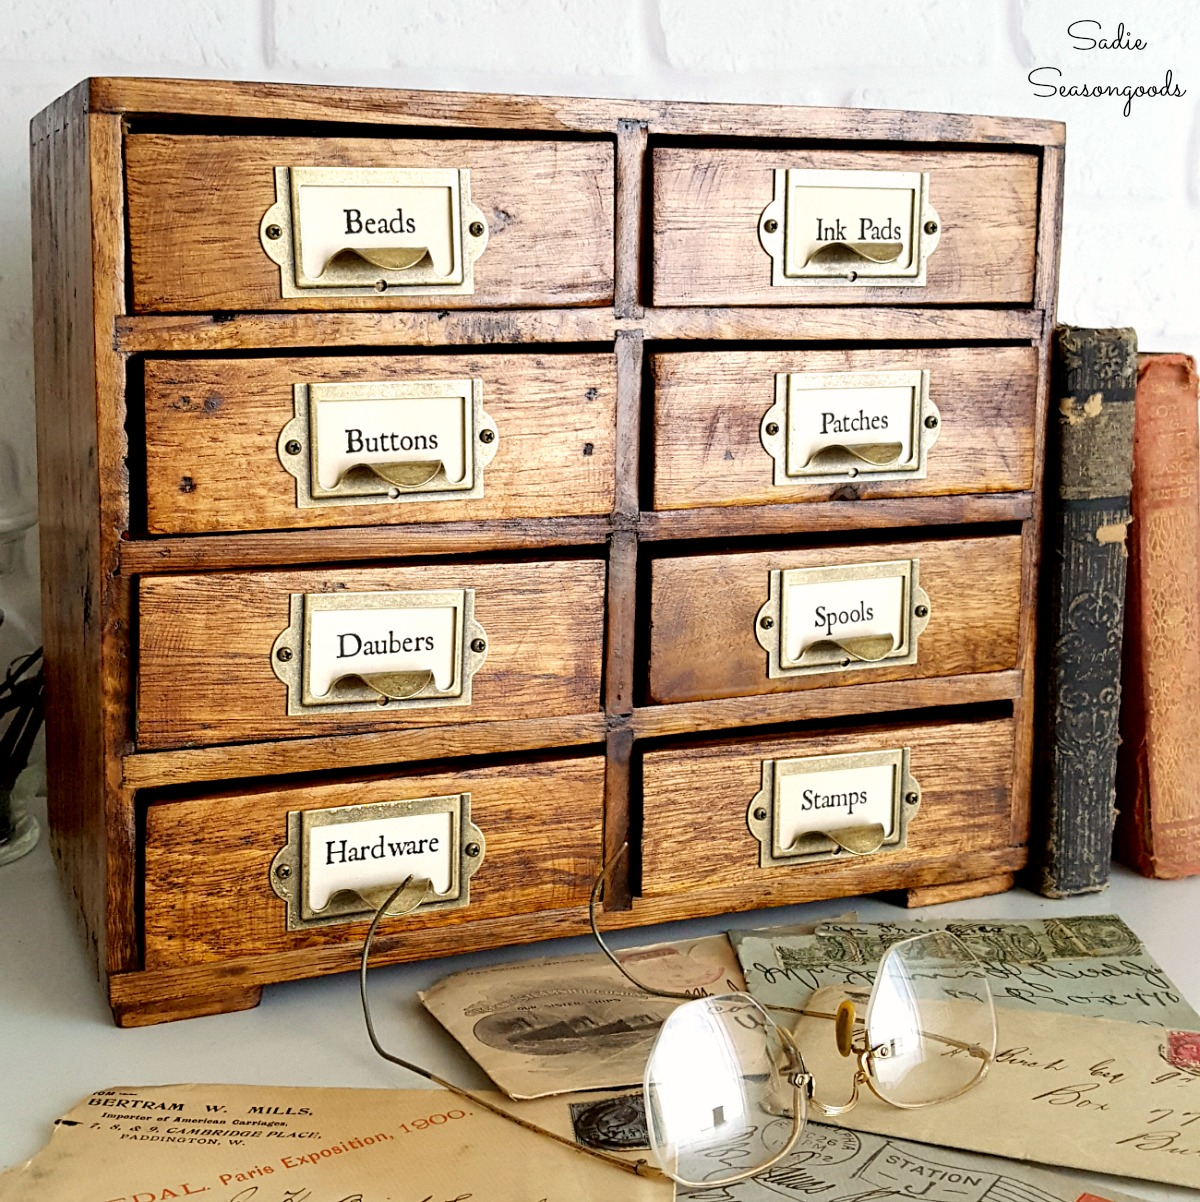 How to make a library card catalog from thrift store furniture into vintage farmhouse decor by Sadie Seasongoods